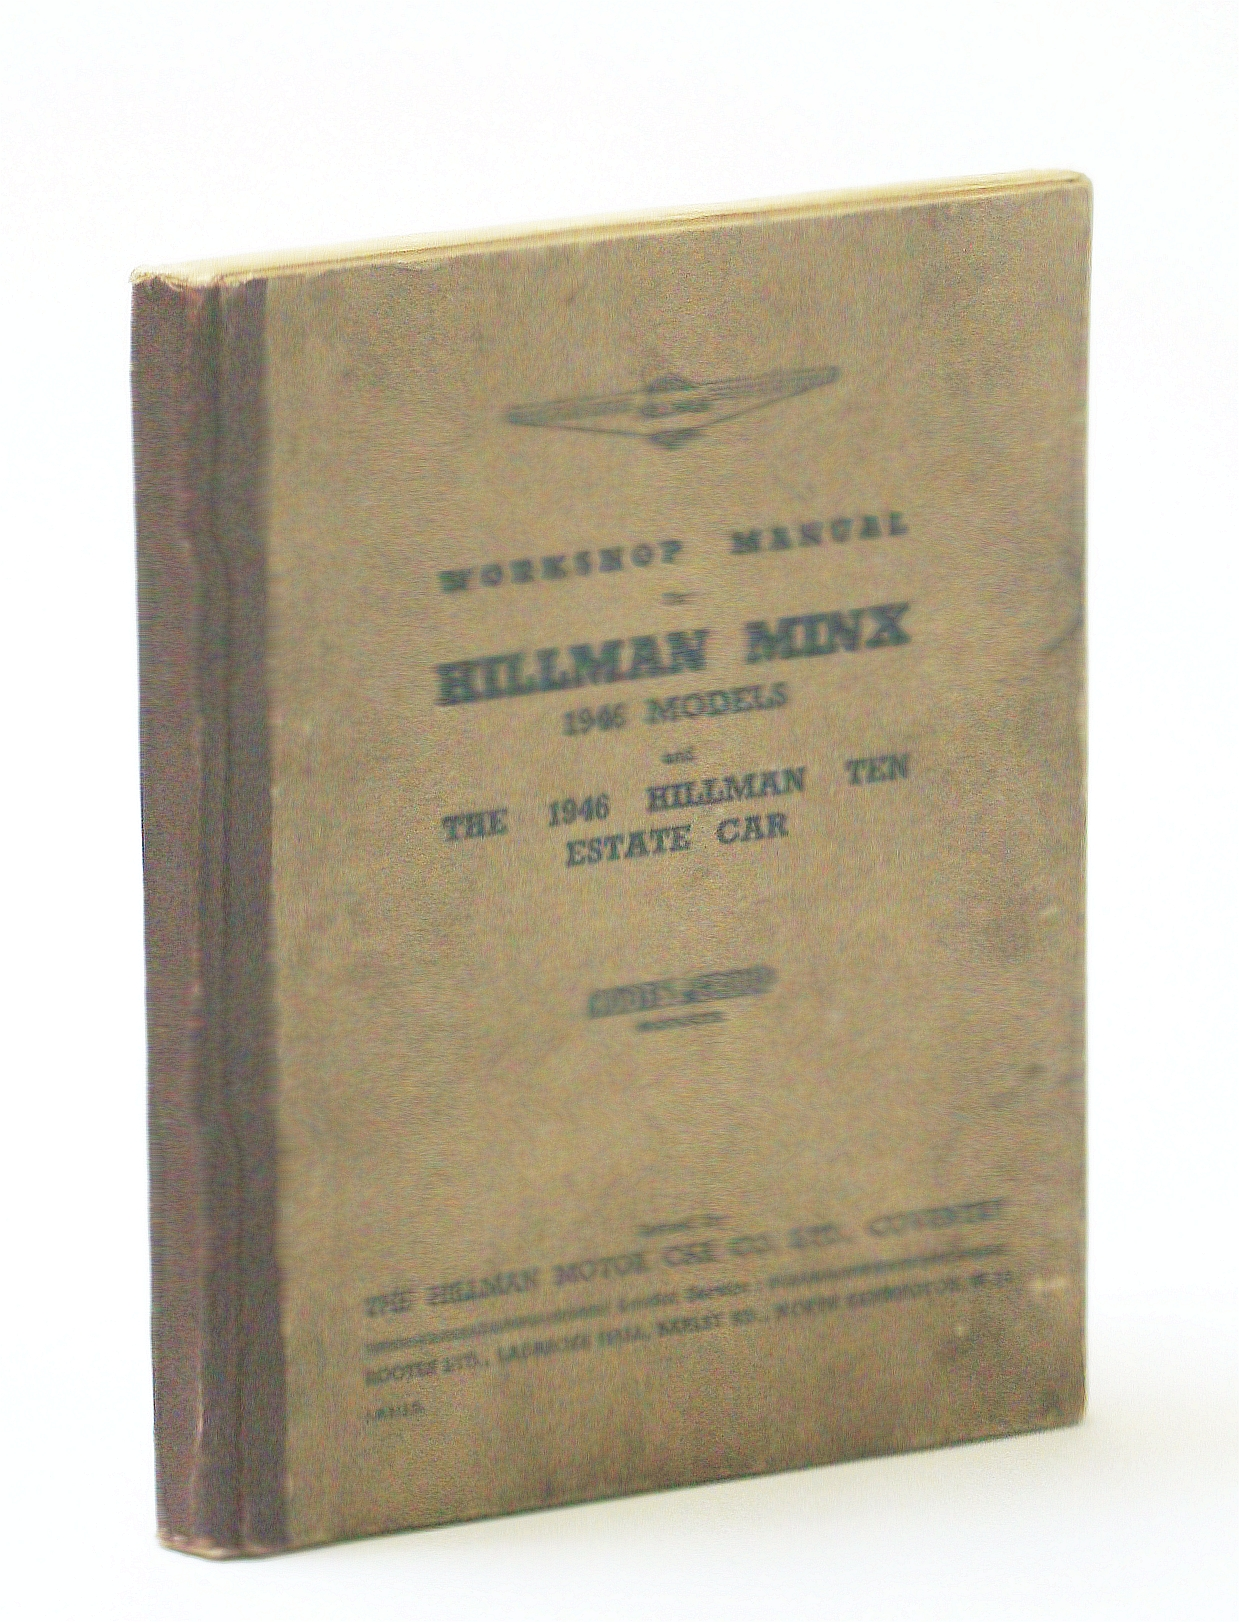 Image for Hillman Minx 1946 Models and the 1946 Hillman Ten Estate Car Workshop Manual